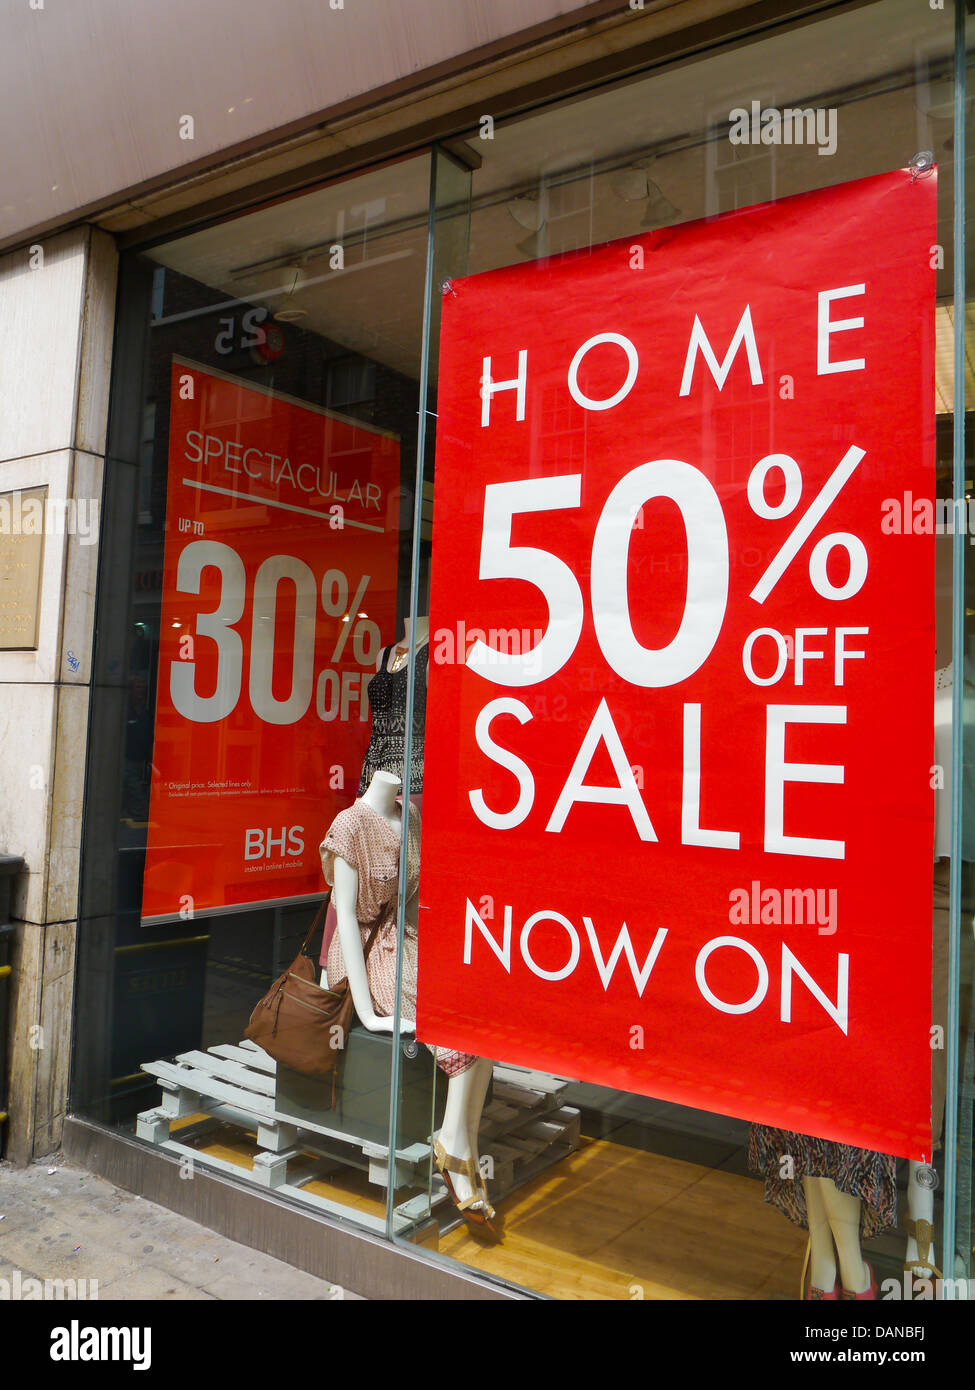 50% off sale sign in a clothes shop, York, England. - Stock Image